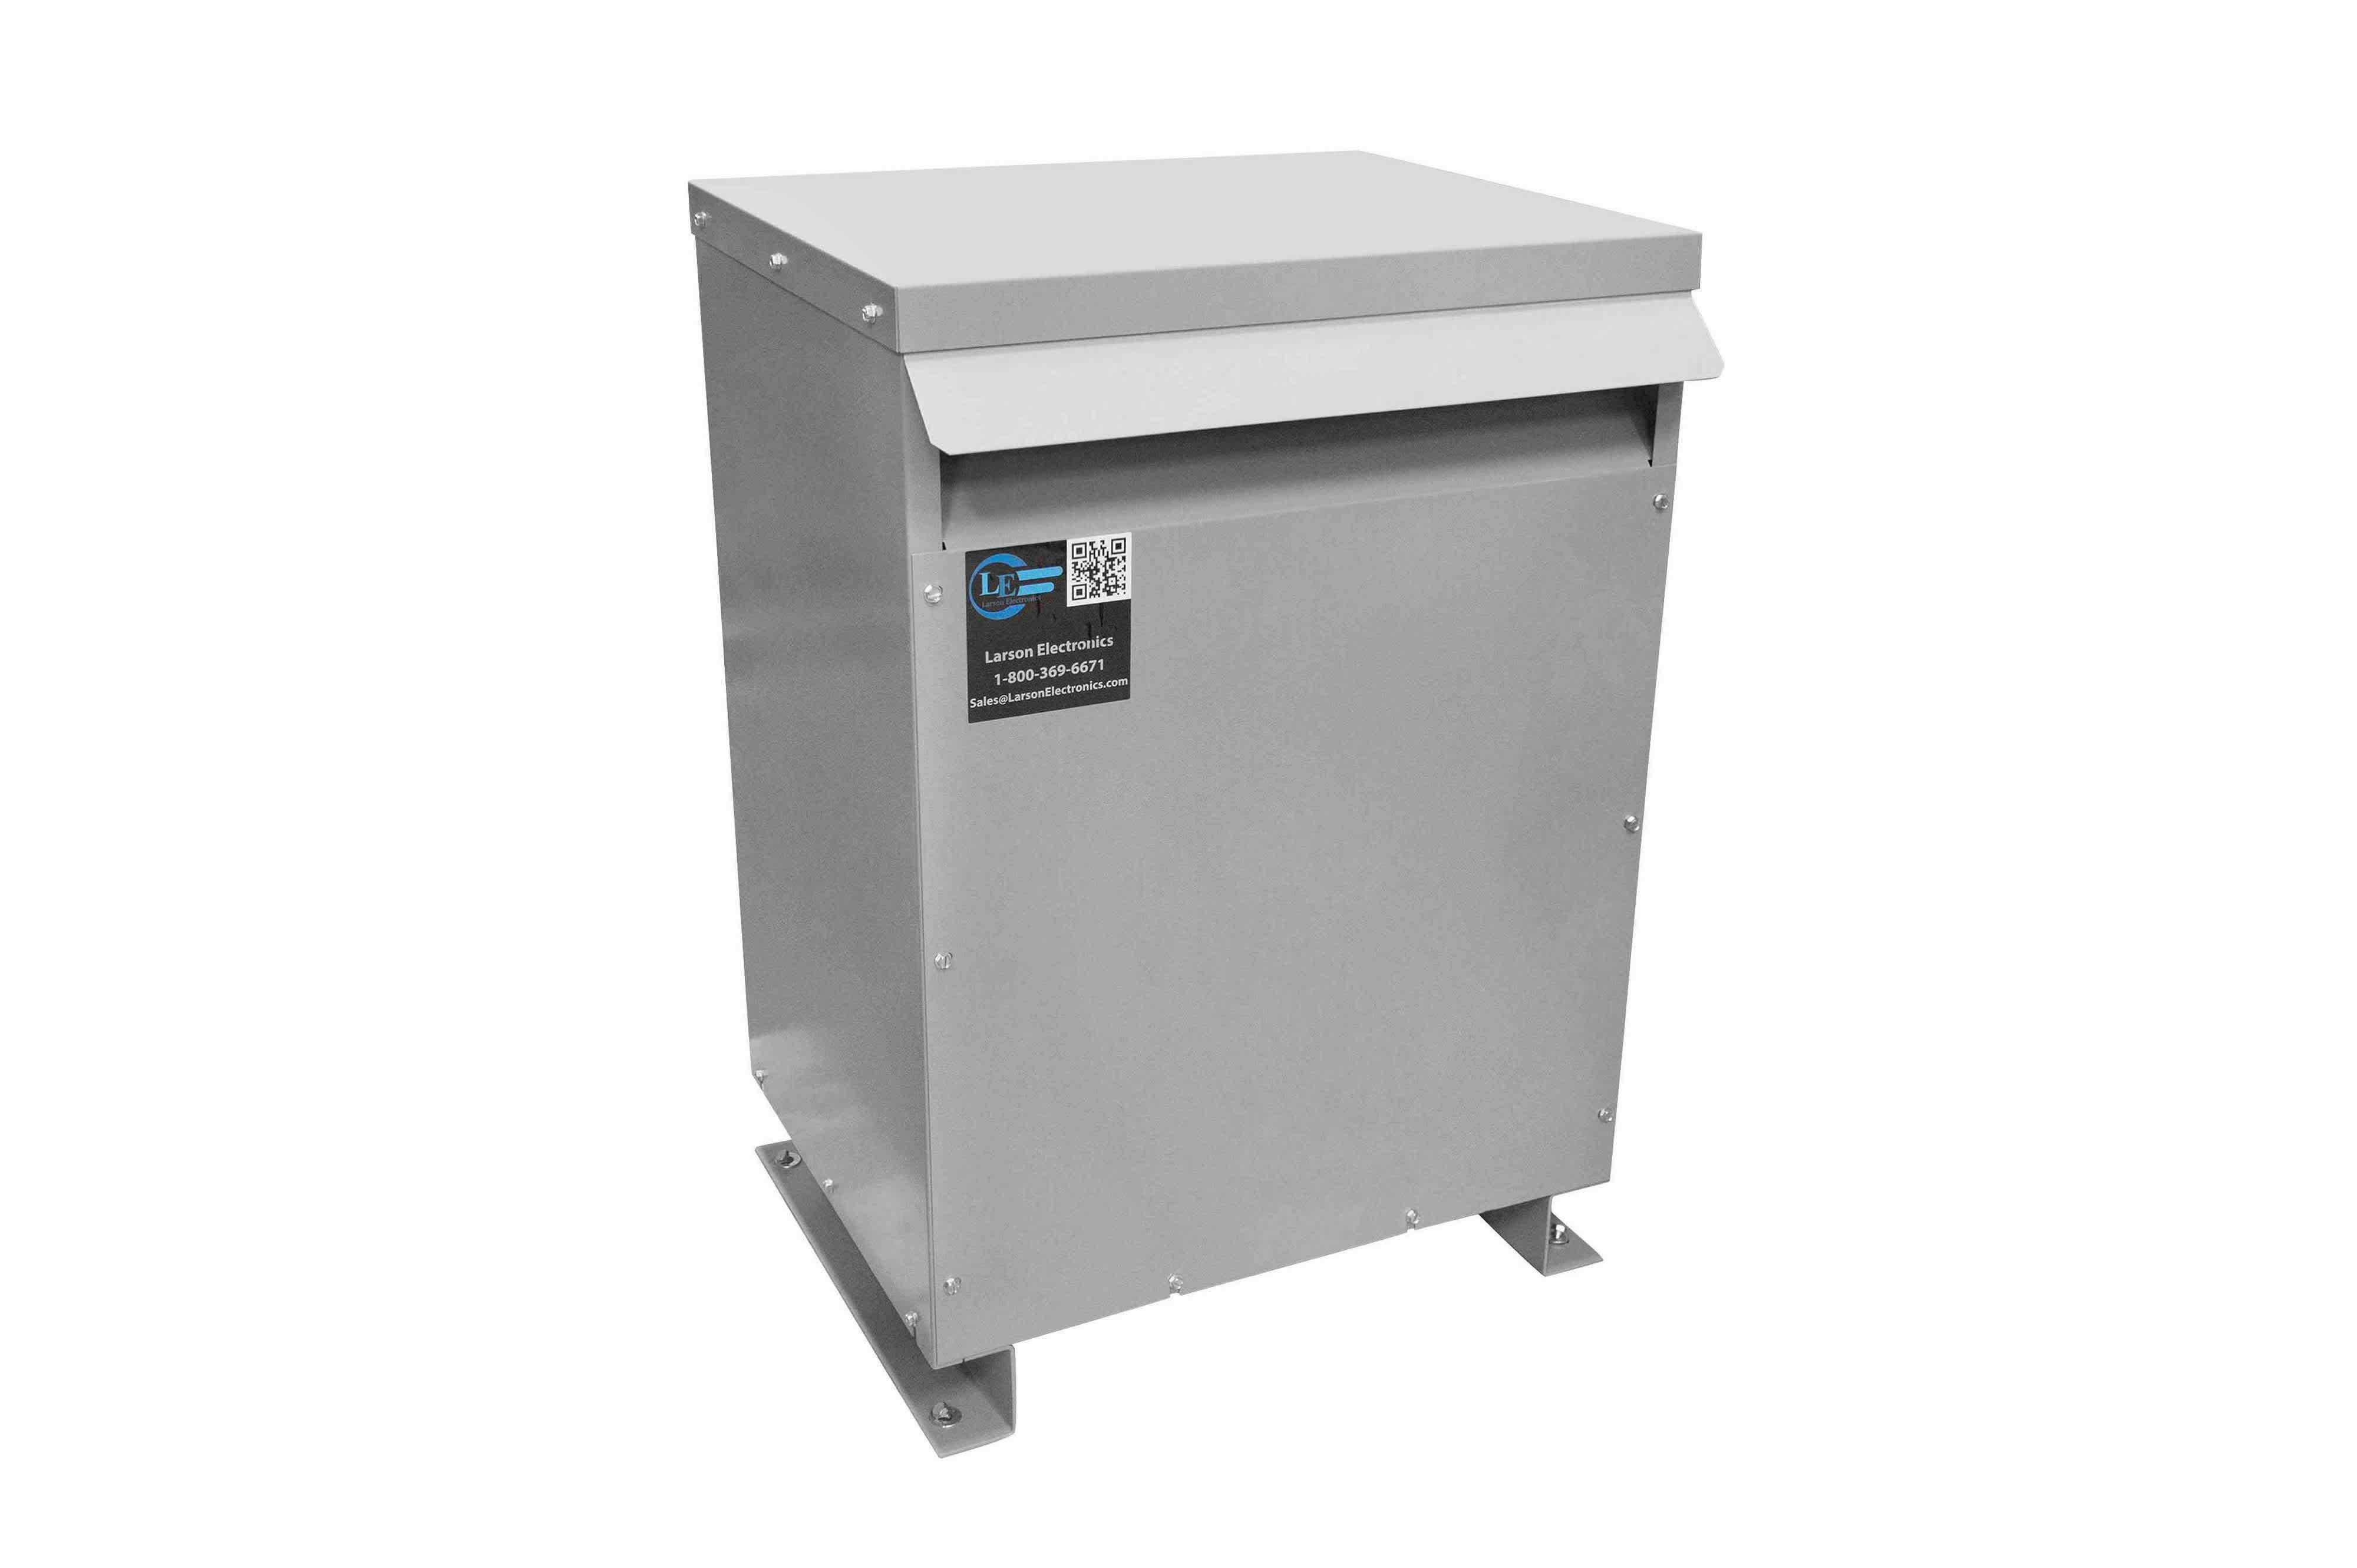 112.5 kVA 3PH Isolation Transformer, 600V Delta Primary, 415V Delta Secondary, N3R, Ventilated, 60 Hz